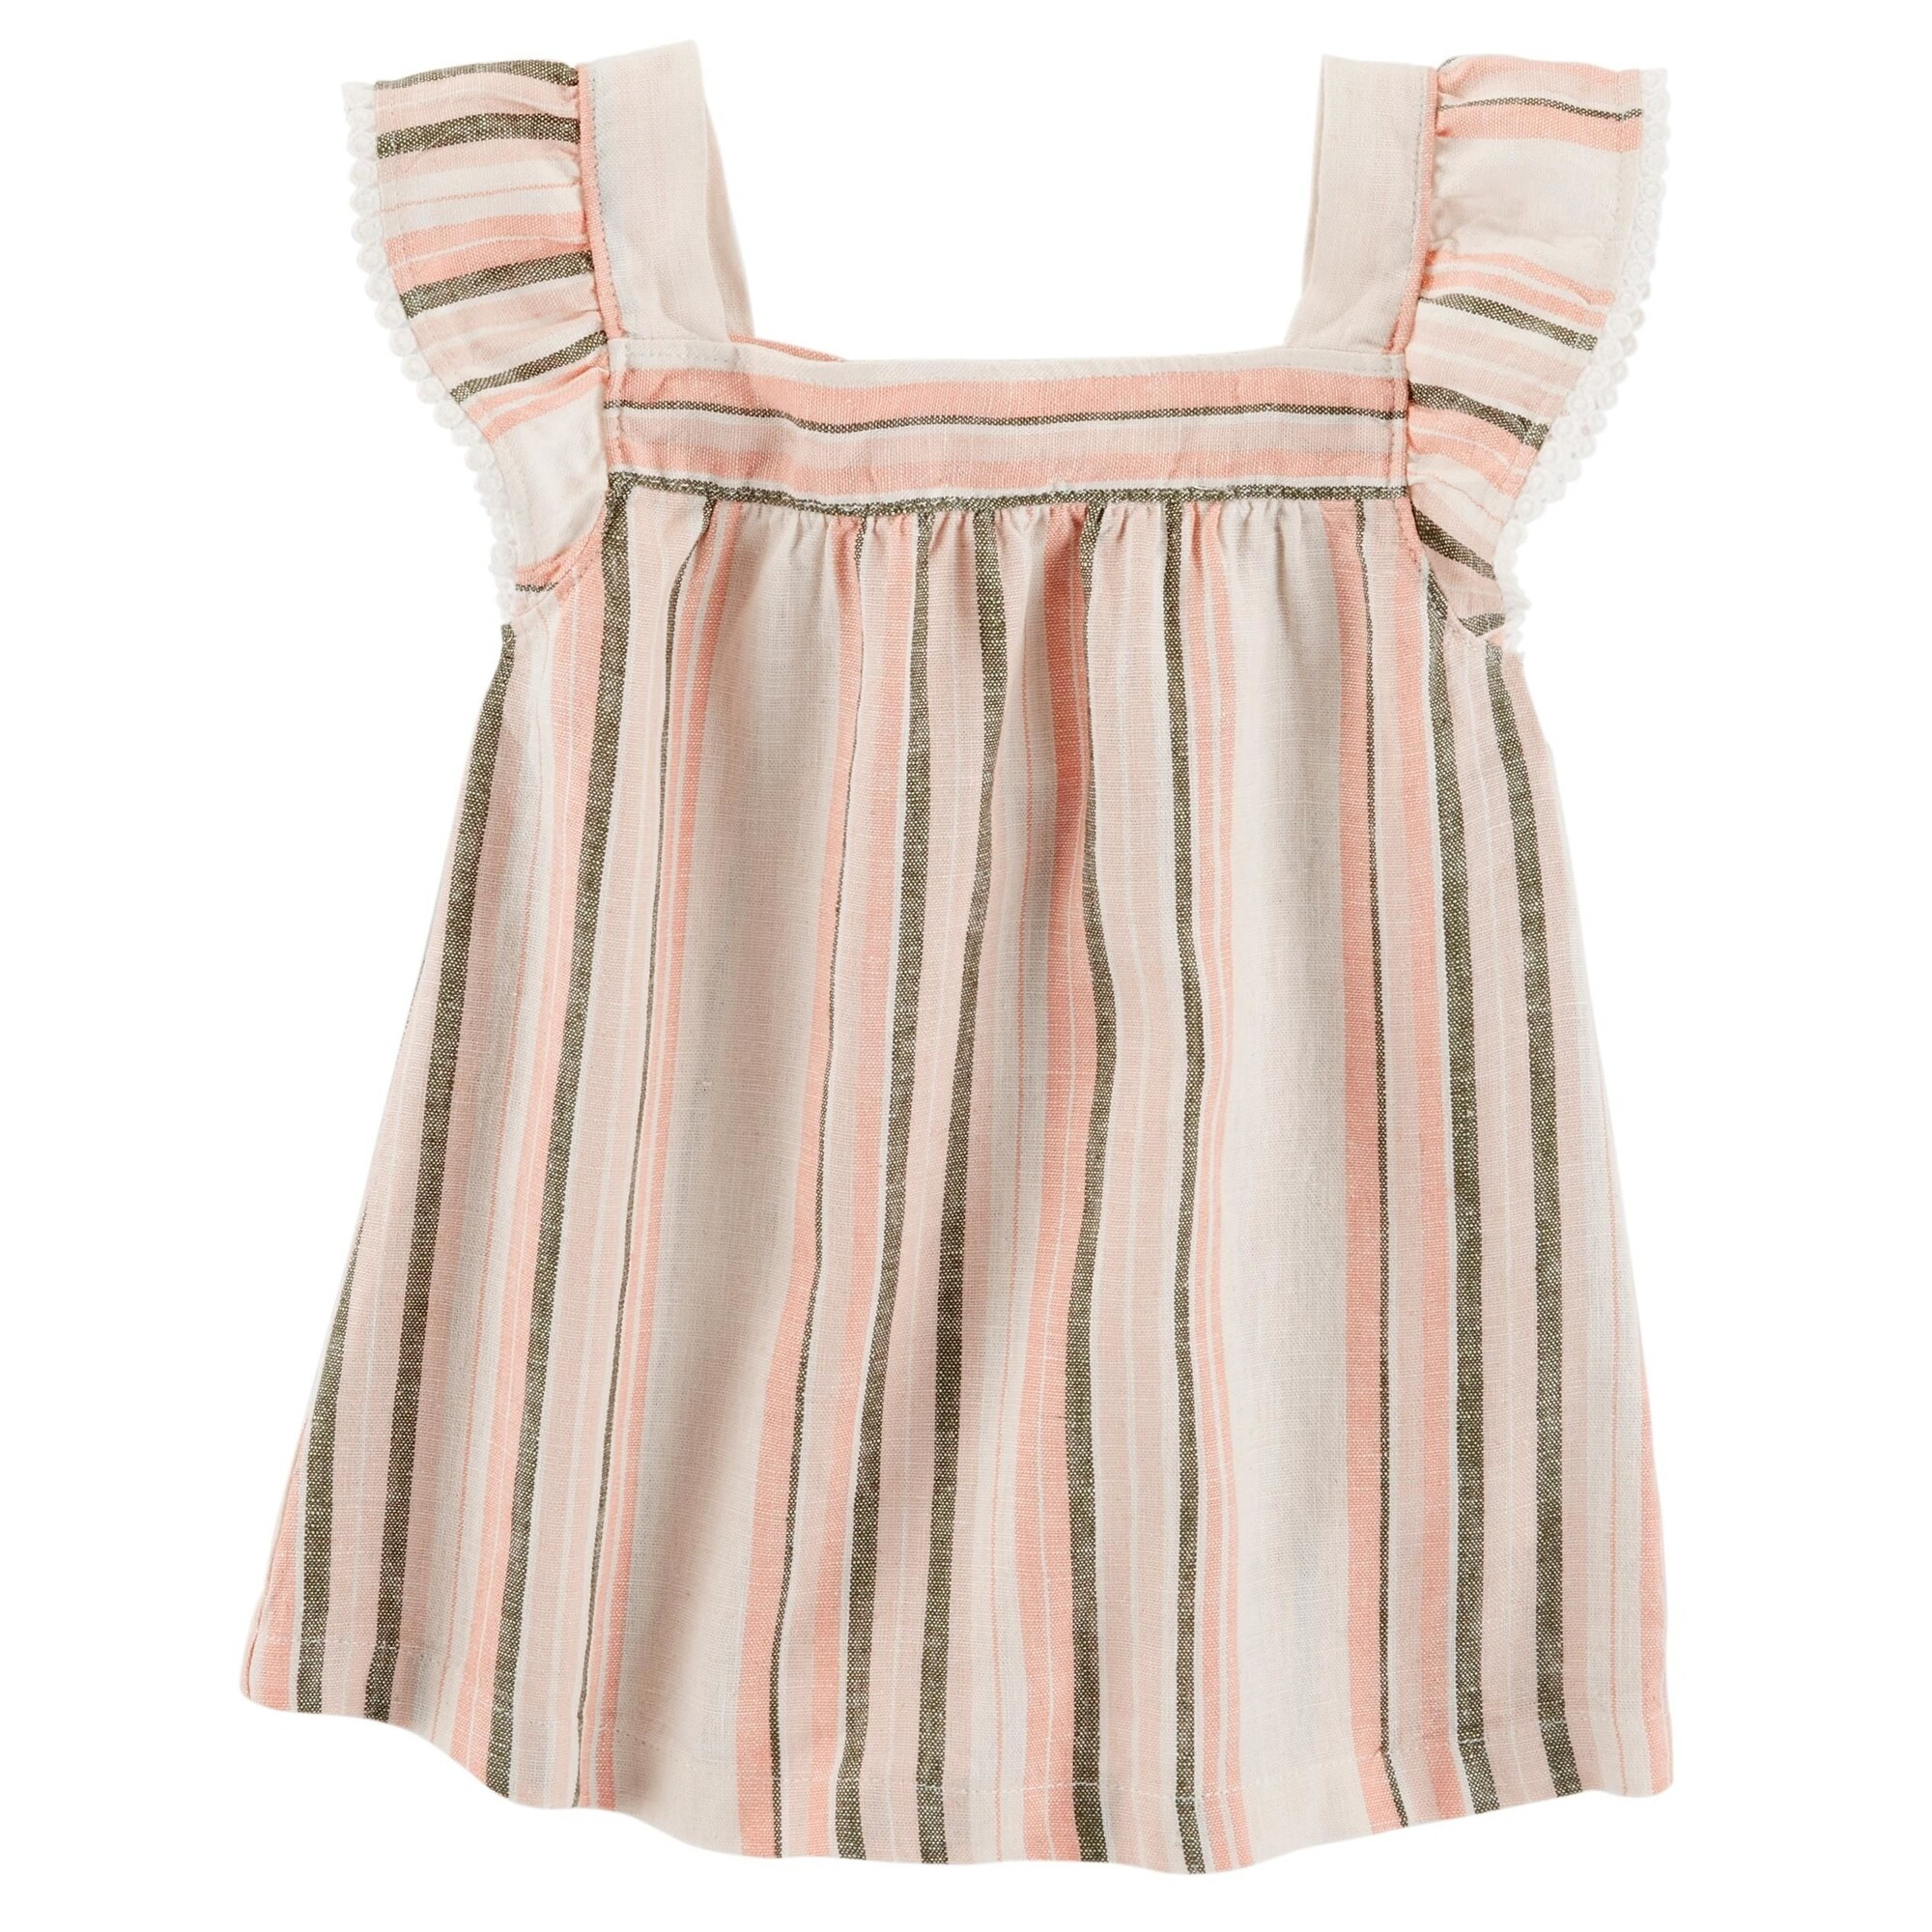 1a1723699 Carter's Children's Clothing   Shop our Best Clothing & Shoes Deals Online  at Overstock